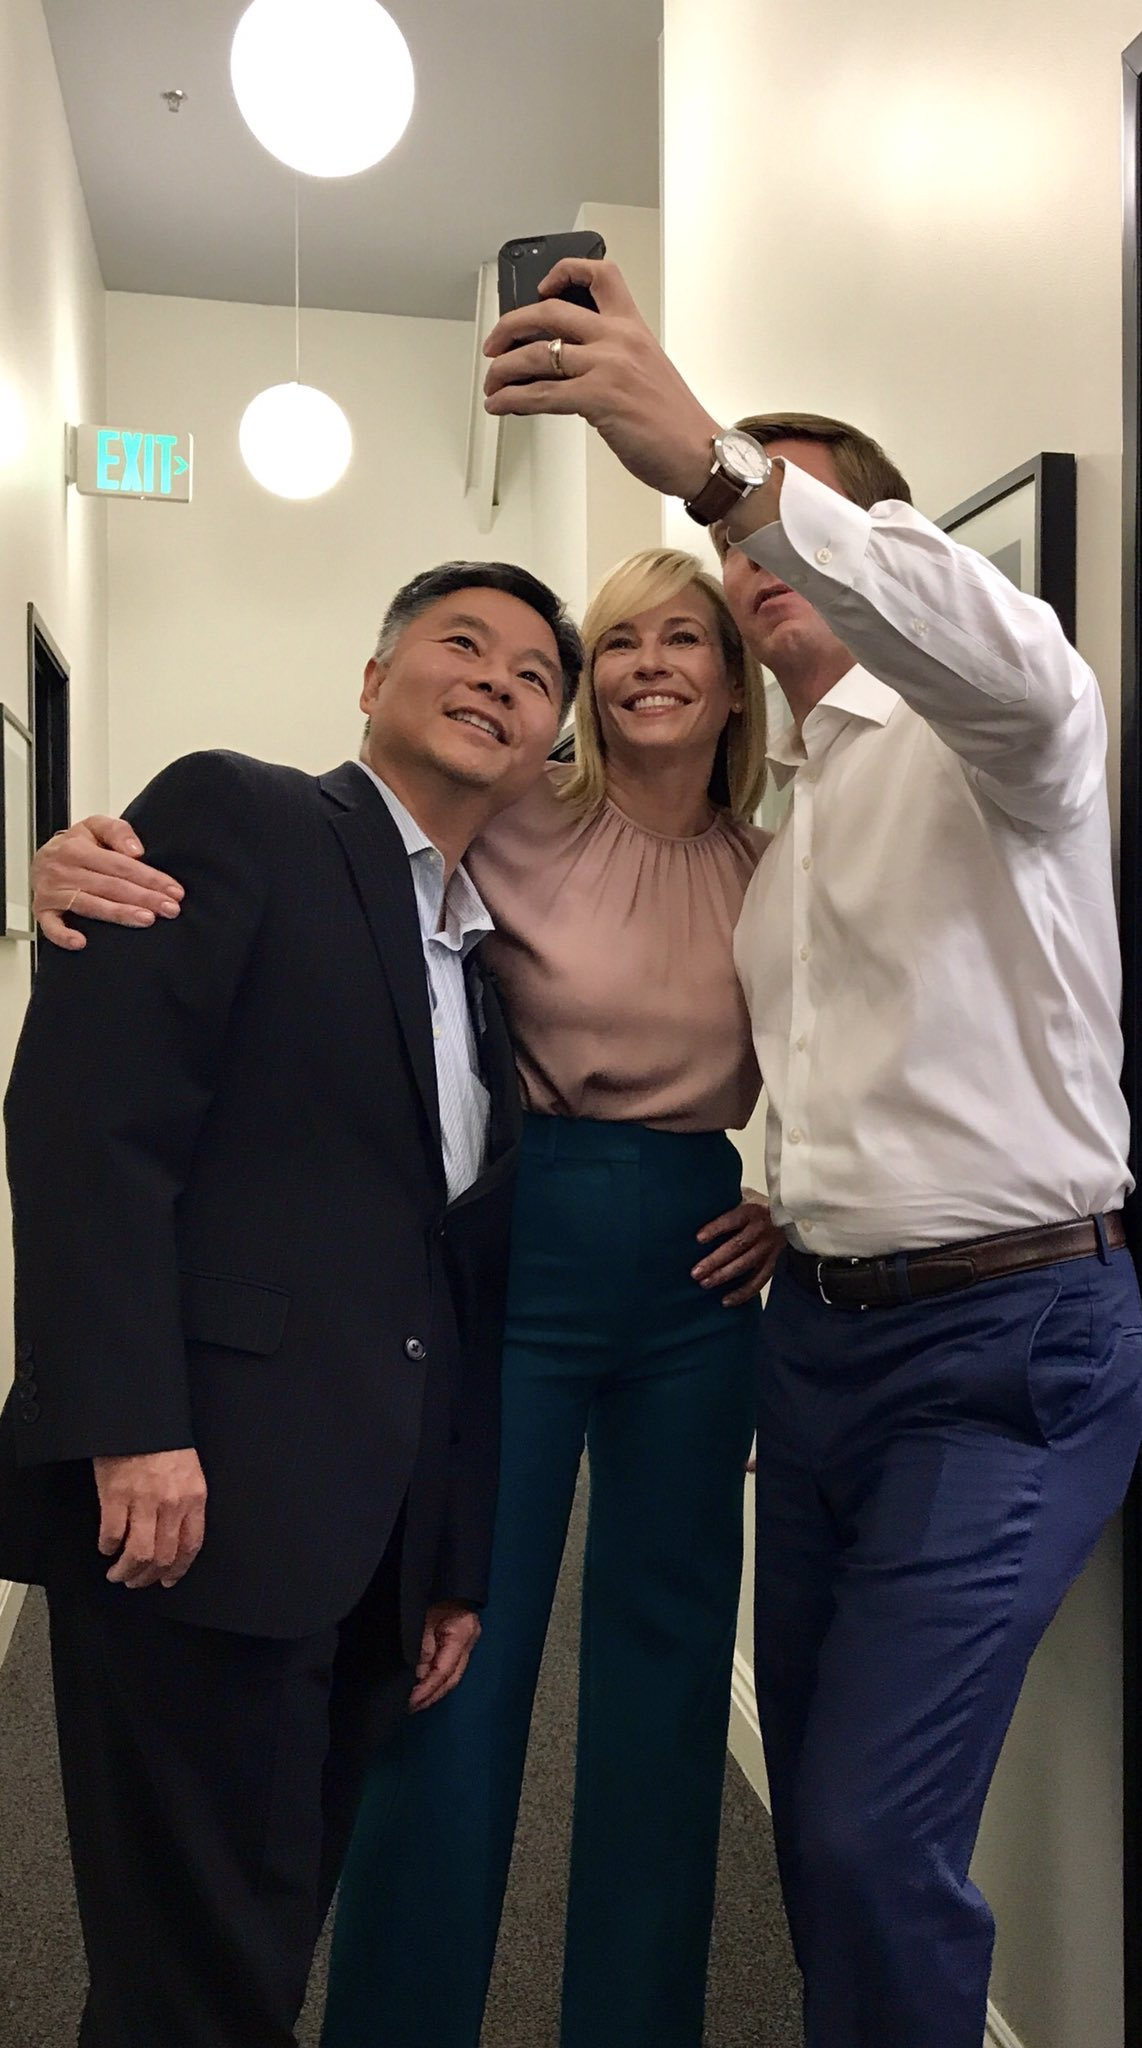 My @Snapchat is funnier when @chelseahandler & @tedlieu make cameos. Laugh along -- RepSwalwell https://t.co/AJu8vczdQU